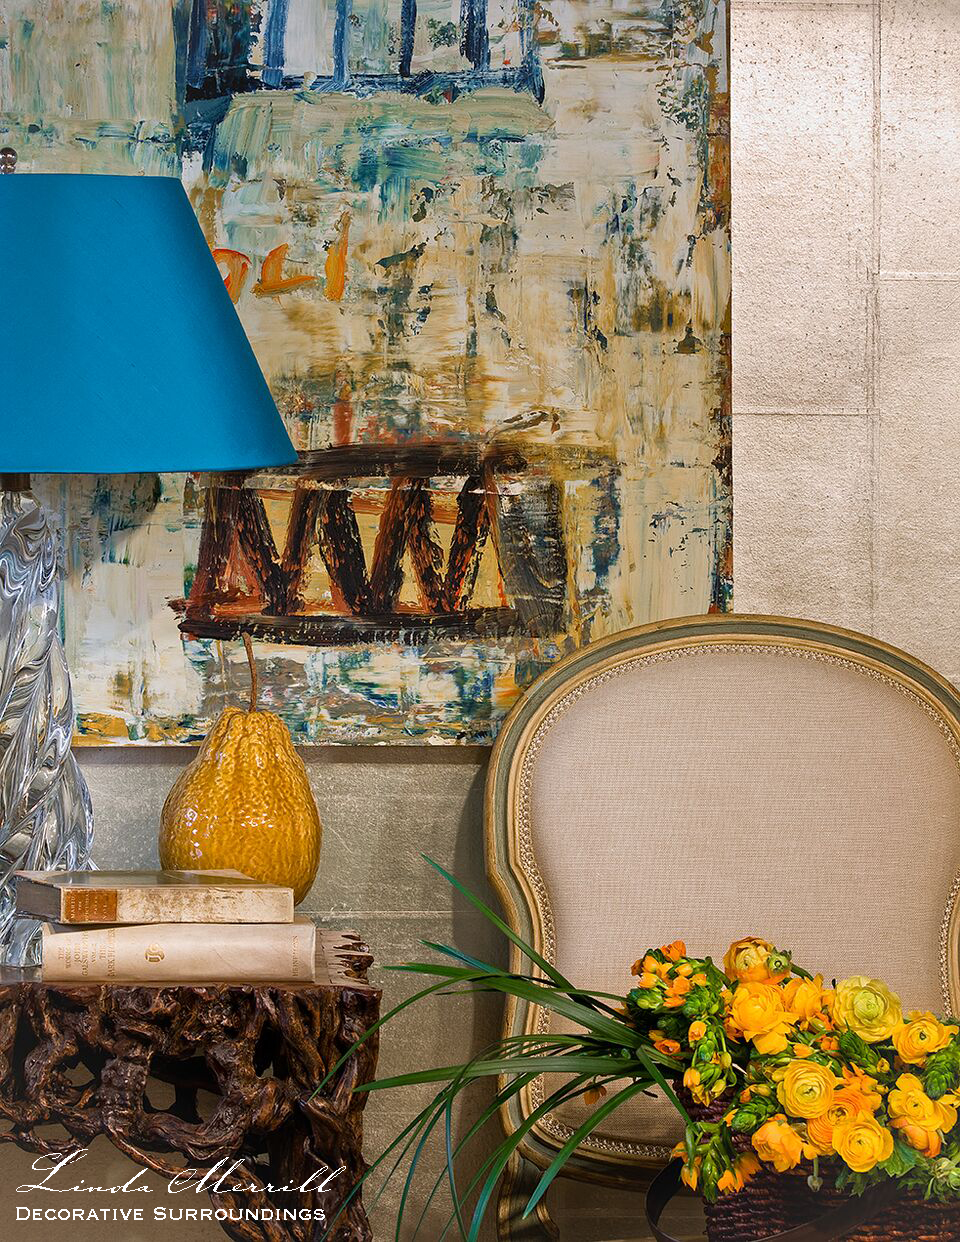 A modern vignette with modern art, blue lamp shade, faux bois side table, yellow flowers and French side chair